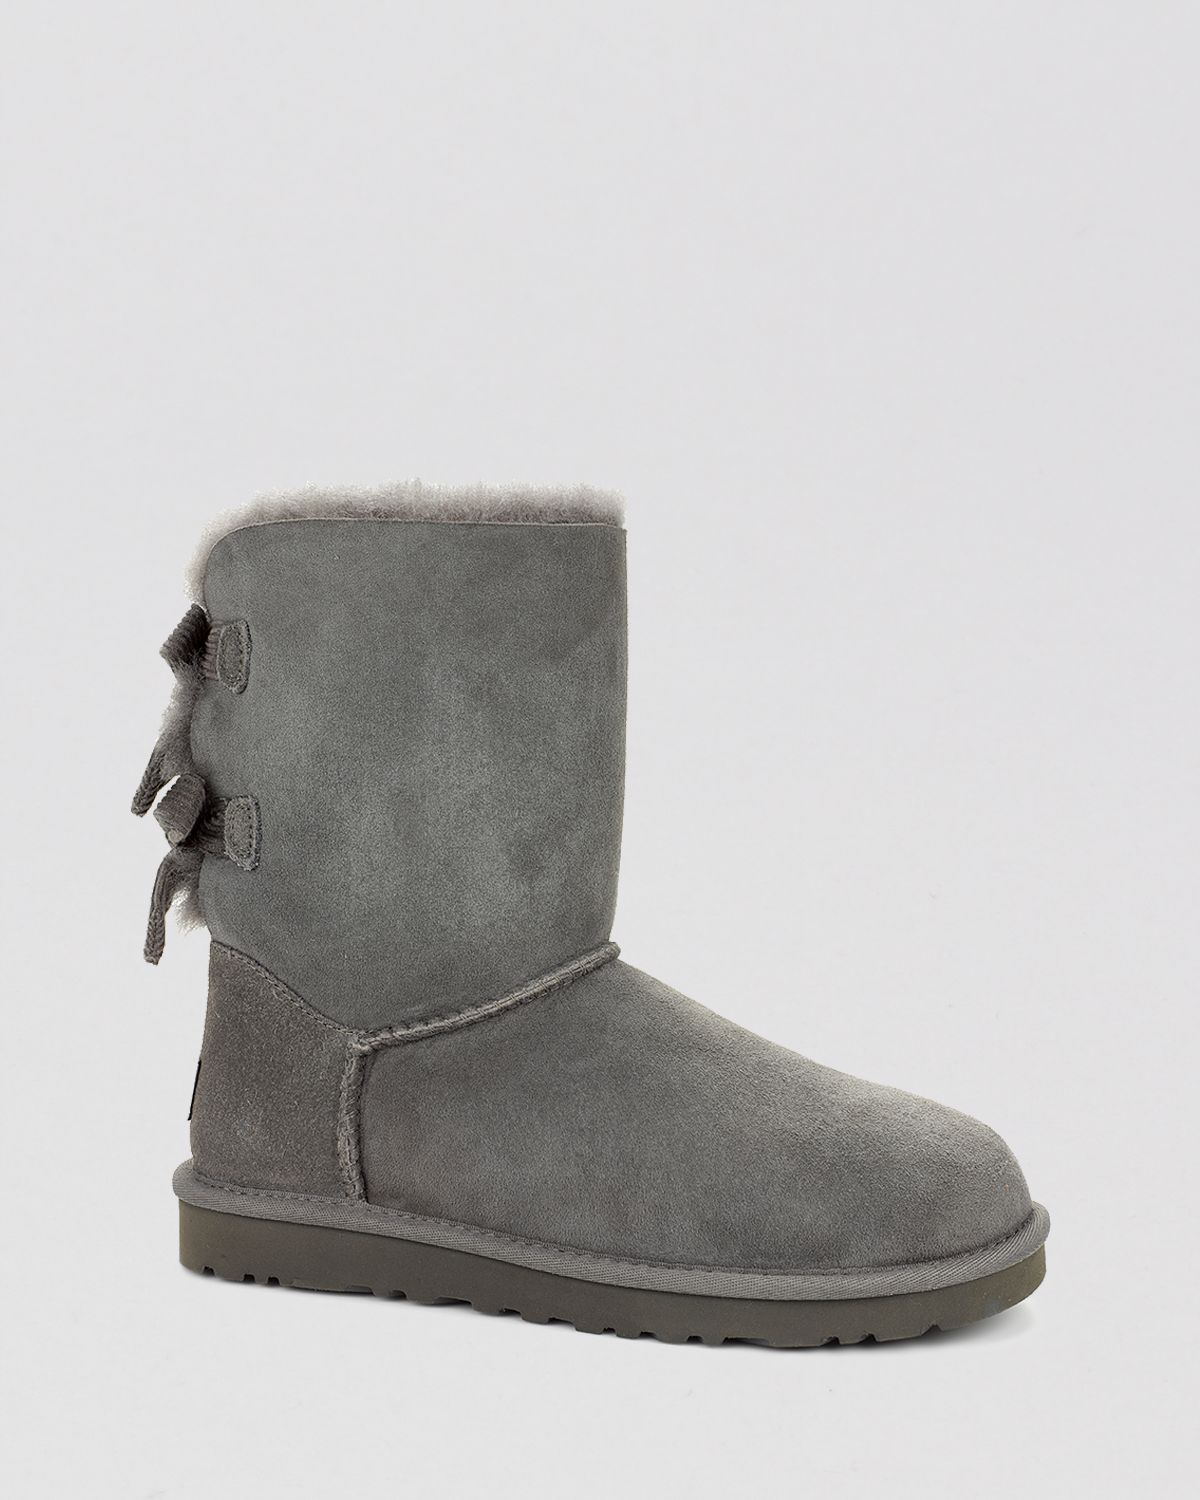 c165fb85afd Ugg Australia Womens Bailey Bow Corduroy Boot - cheap watches mgc ...